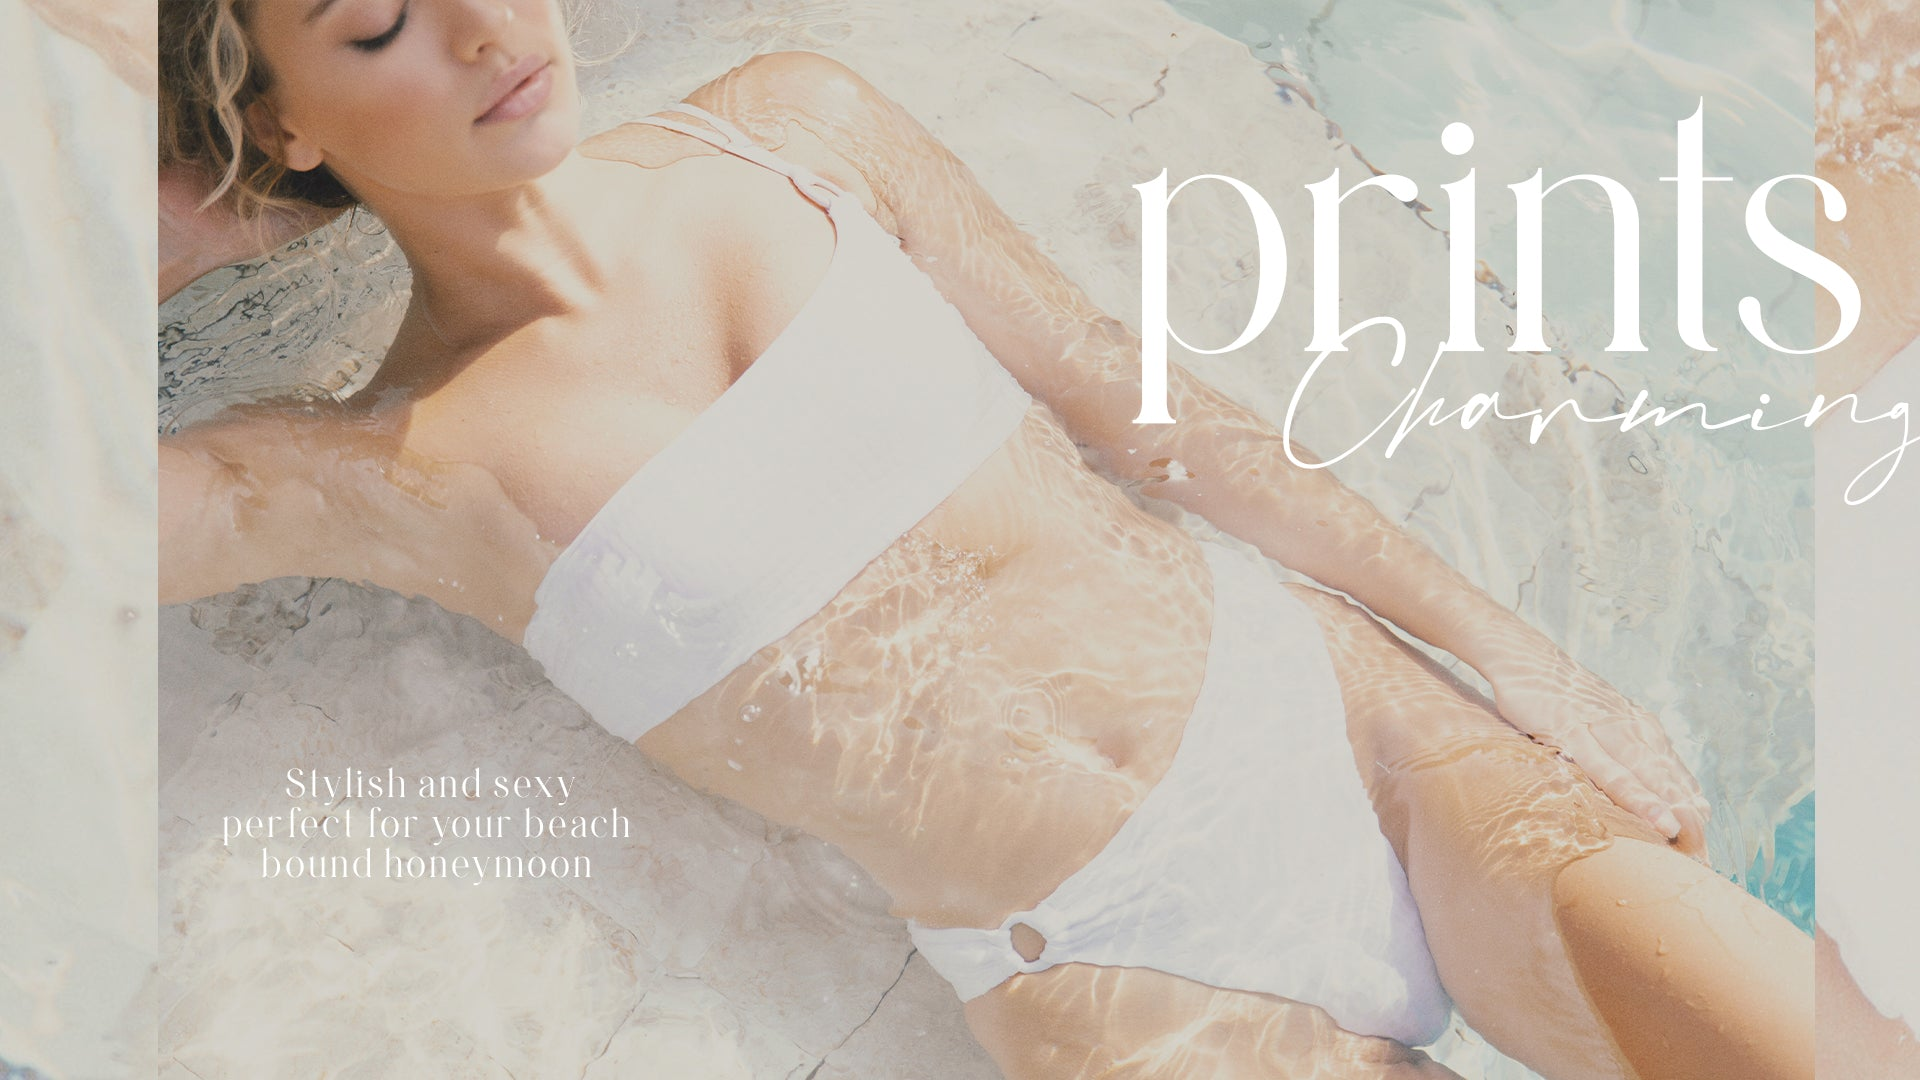 Bridal blog 3 2048x2048 Bridal Swimsuit Guide Our Favorite White Swimsuits for the Bride To Be